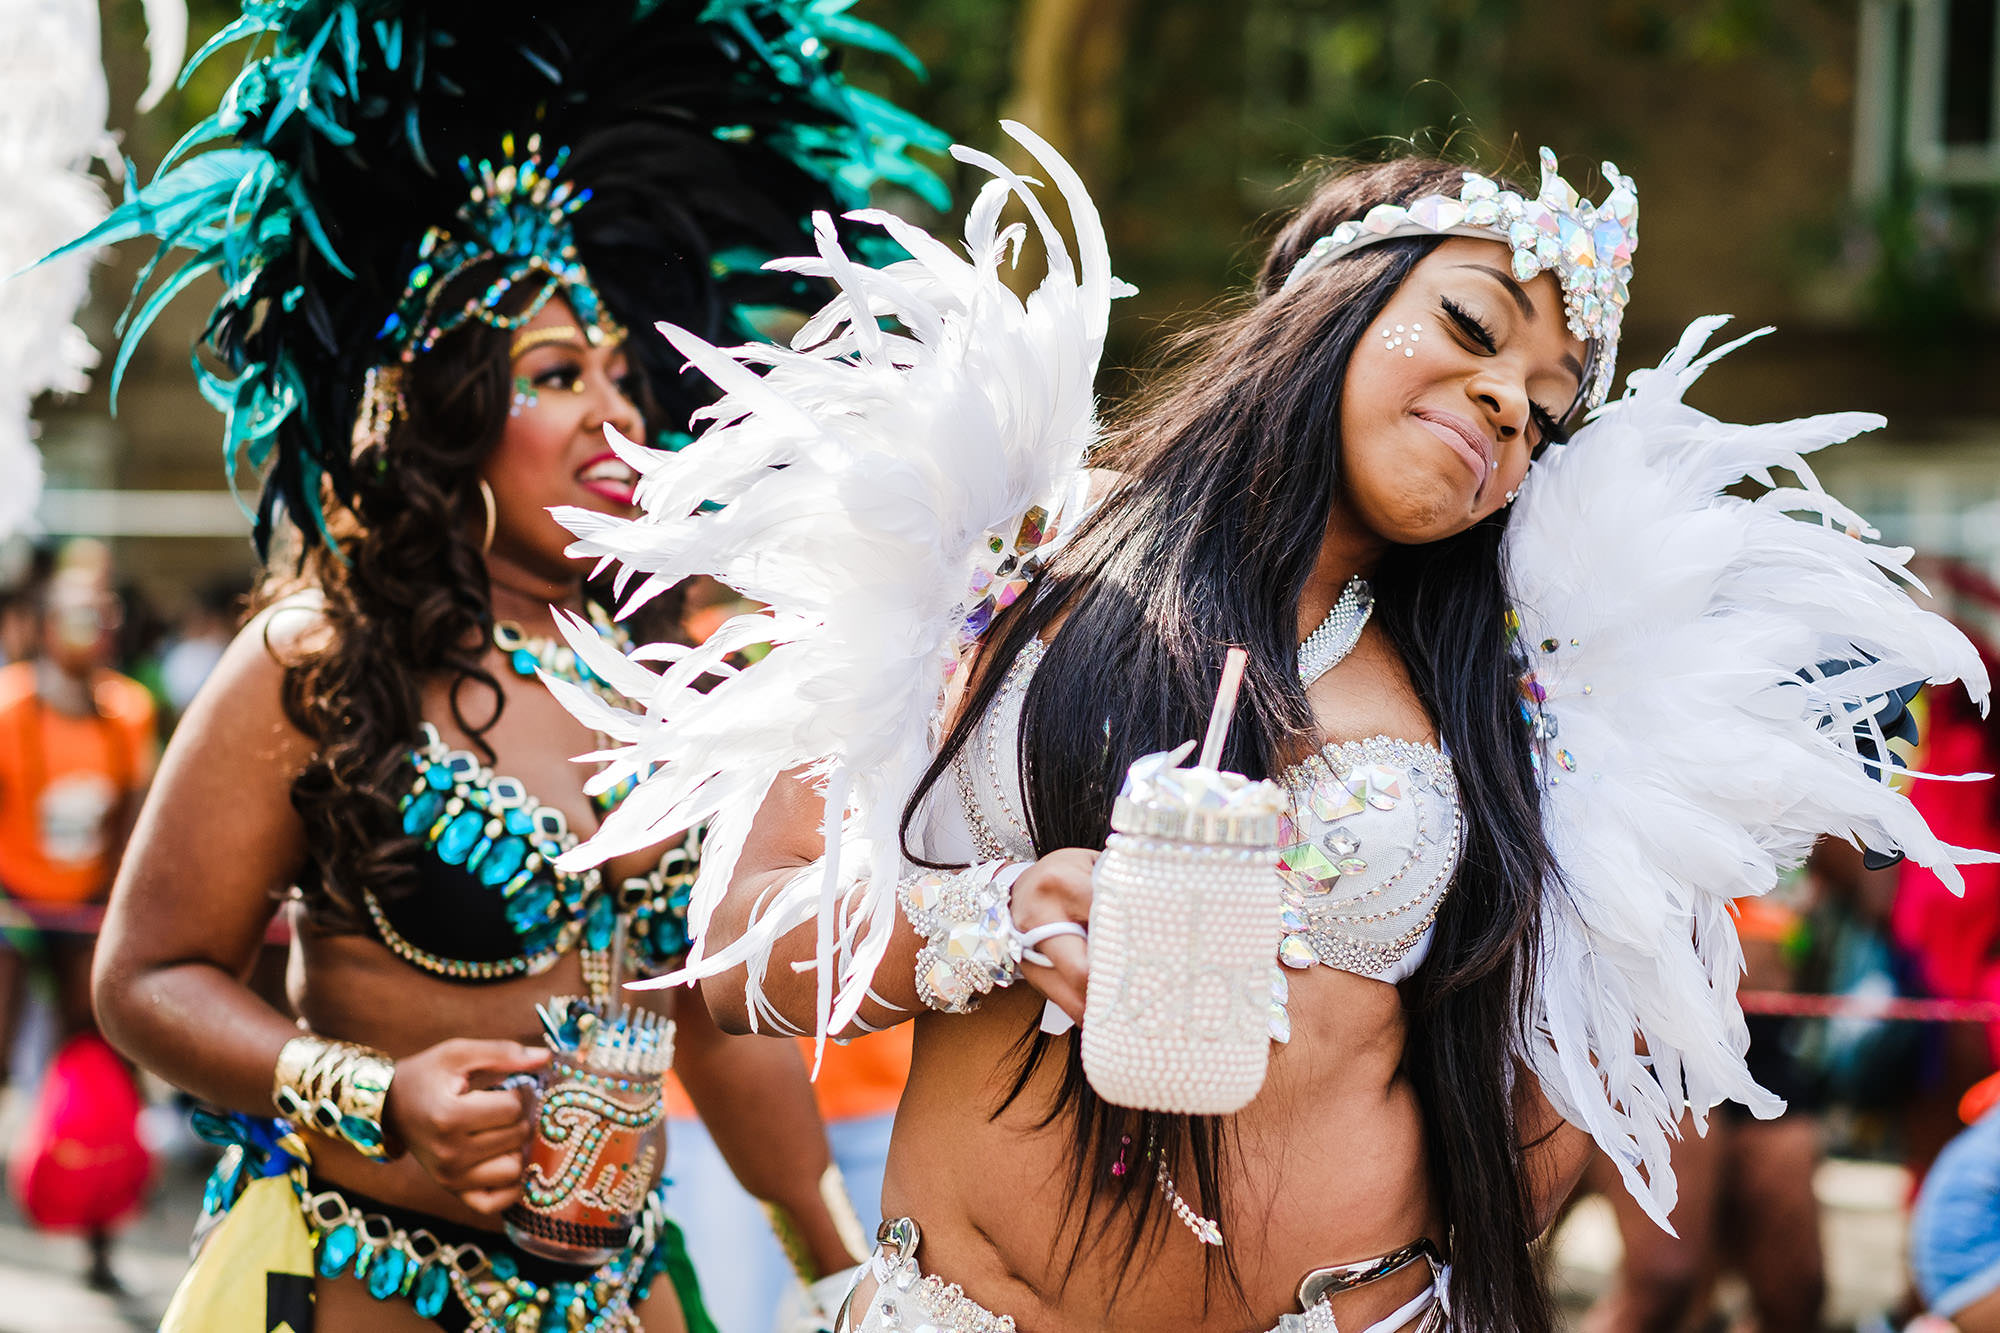 Notting hill carnival London